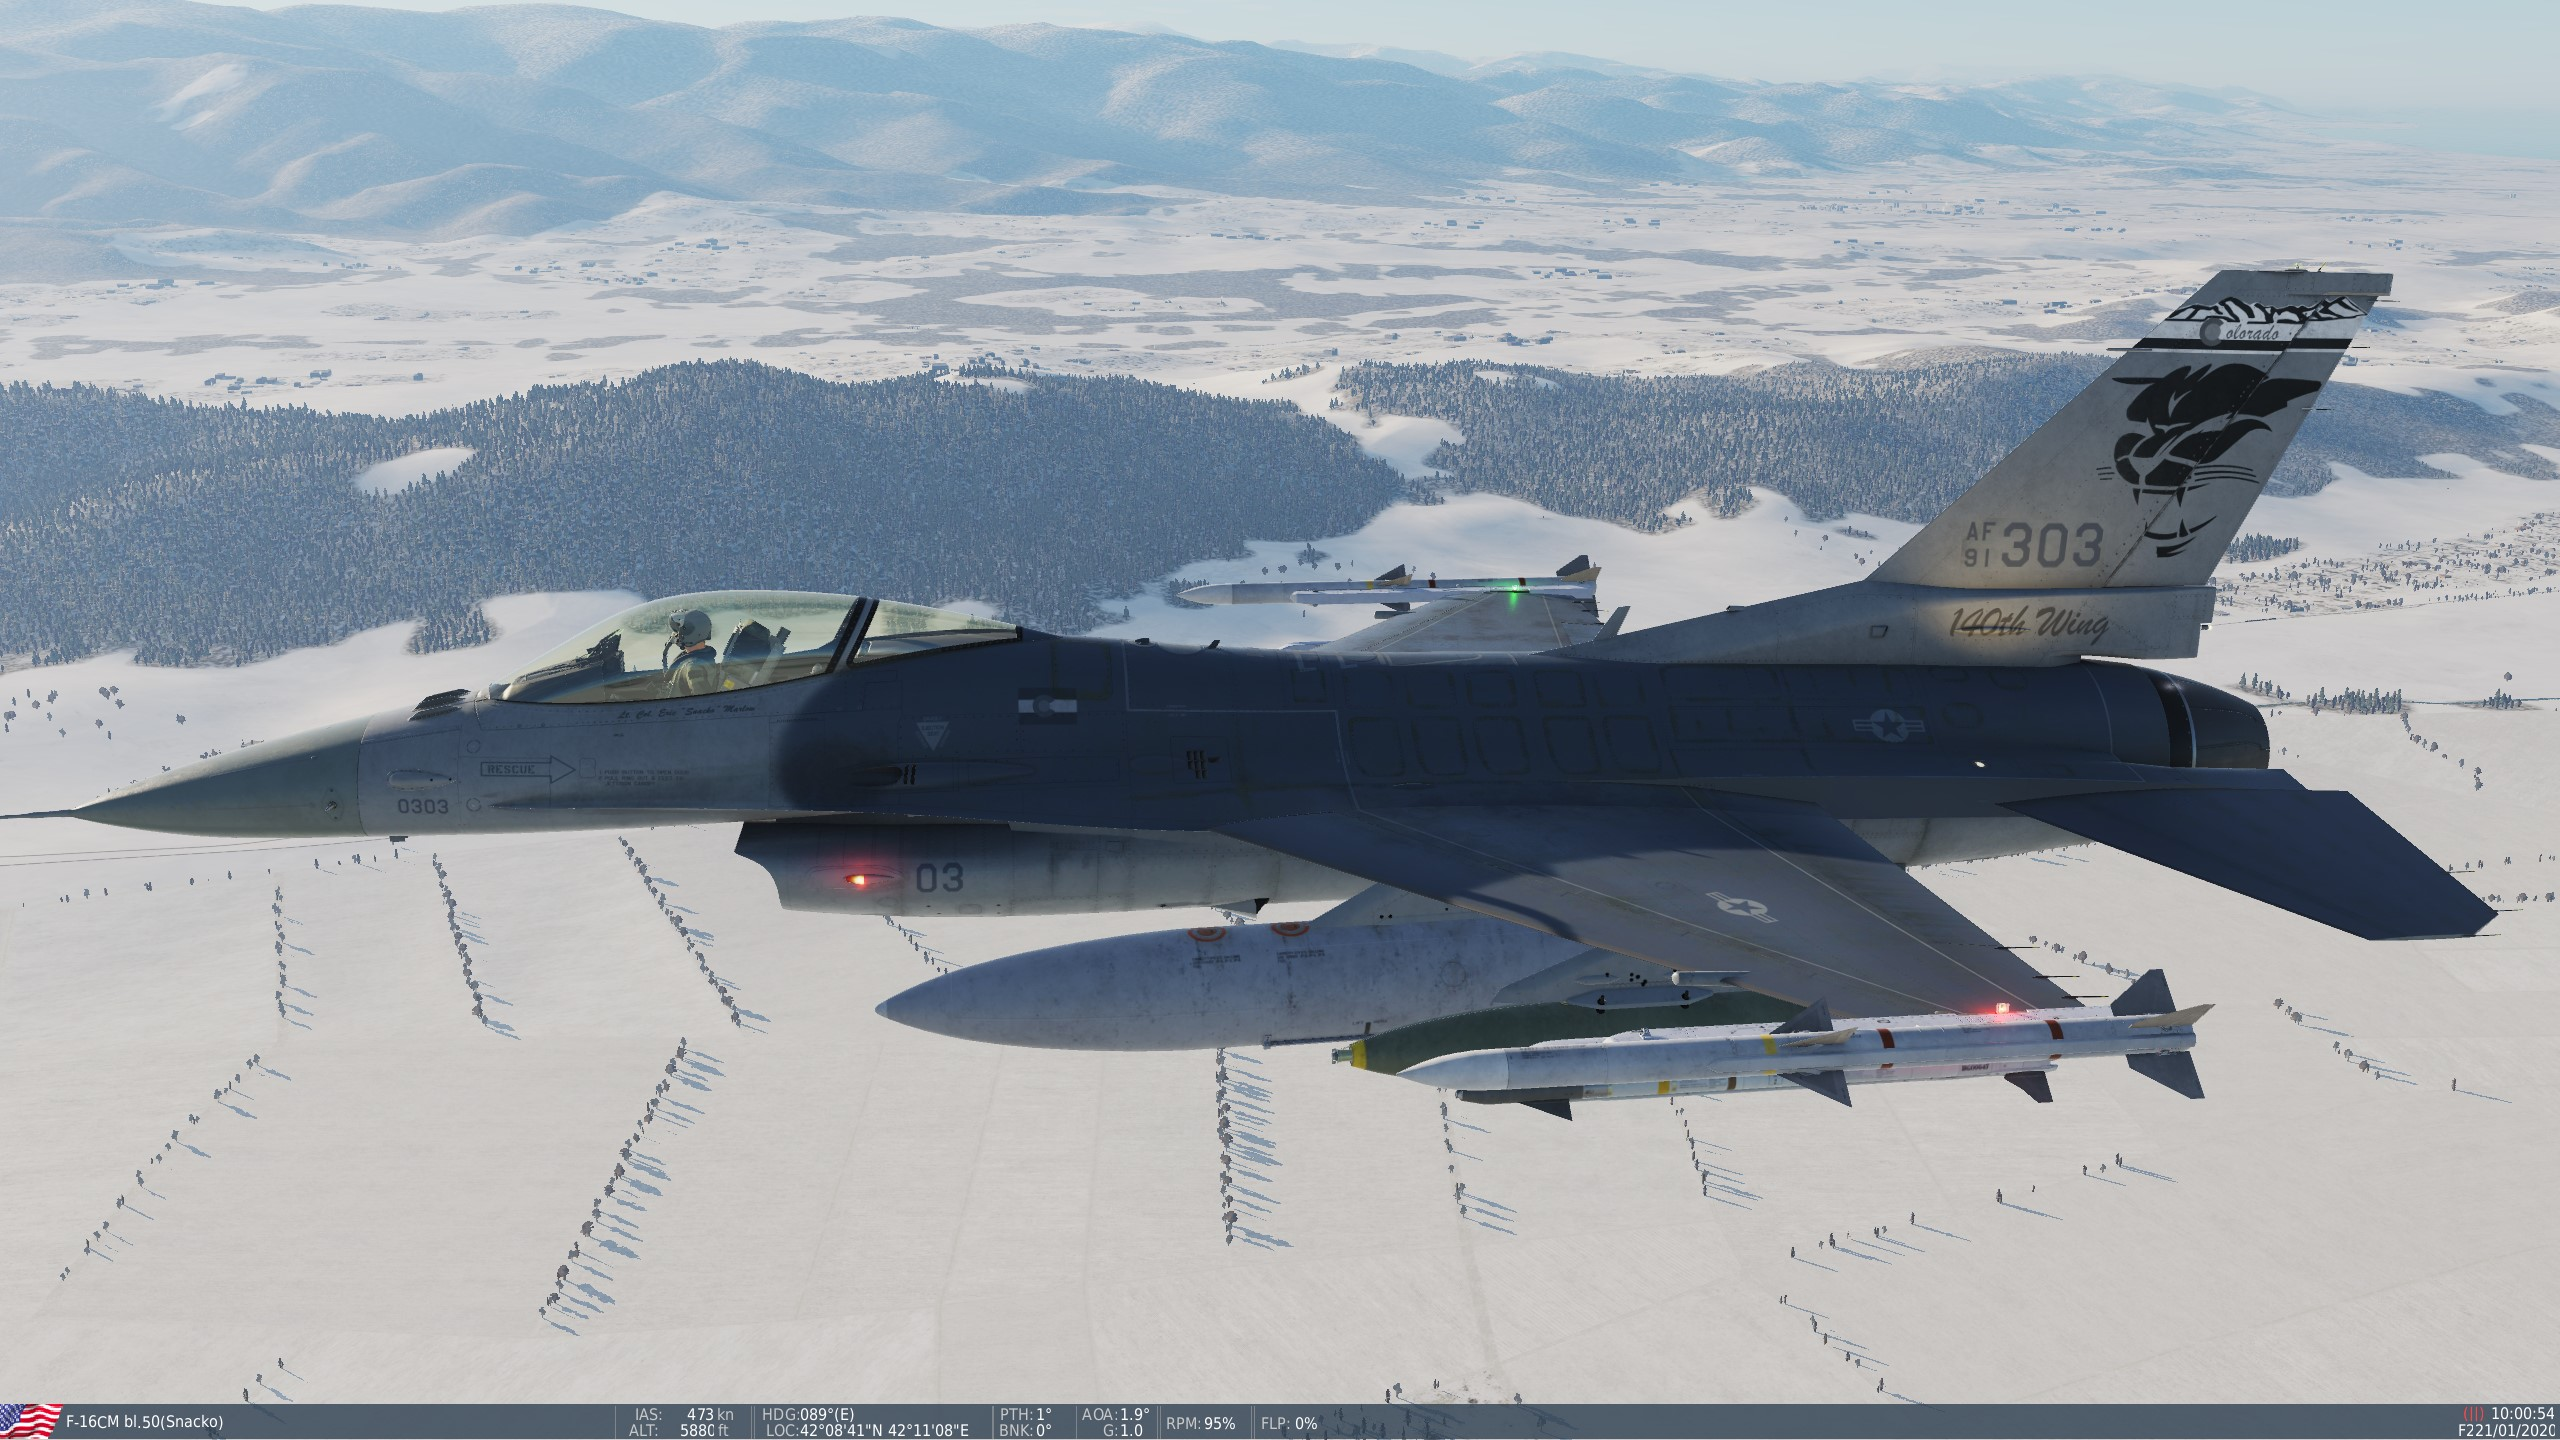 F-16C Livery for COANG 120th Fighter Squadron (Special Cougar Tail)